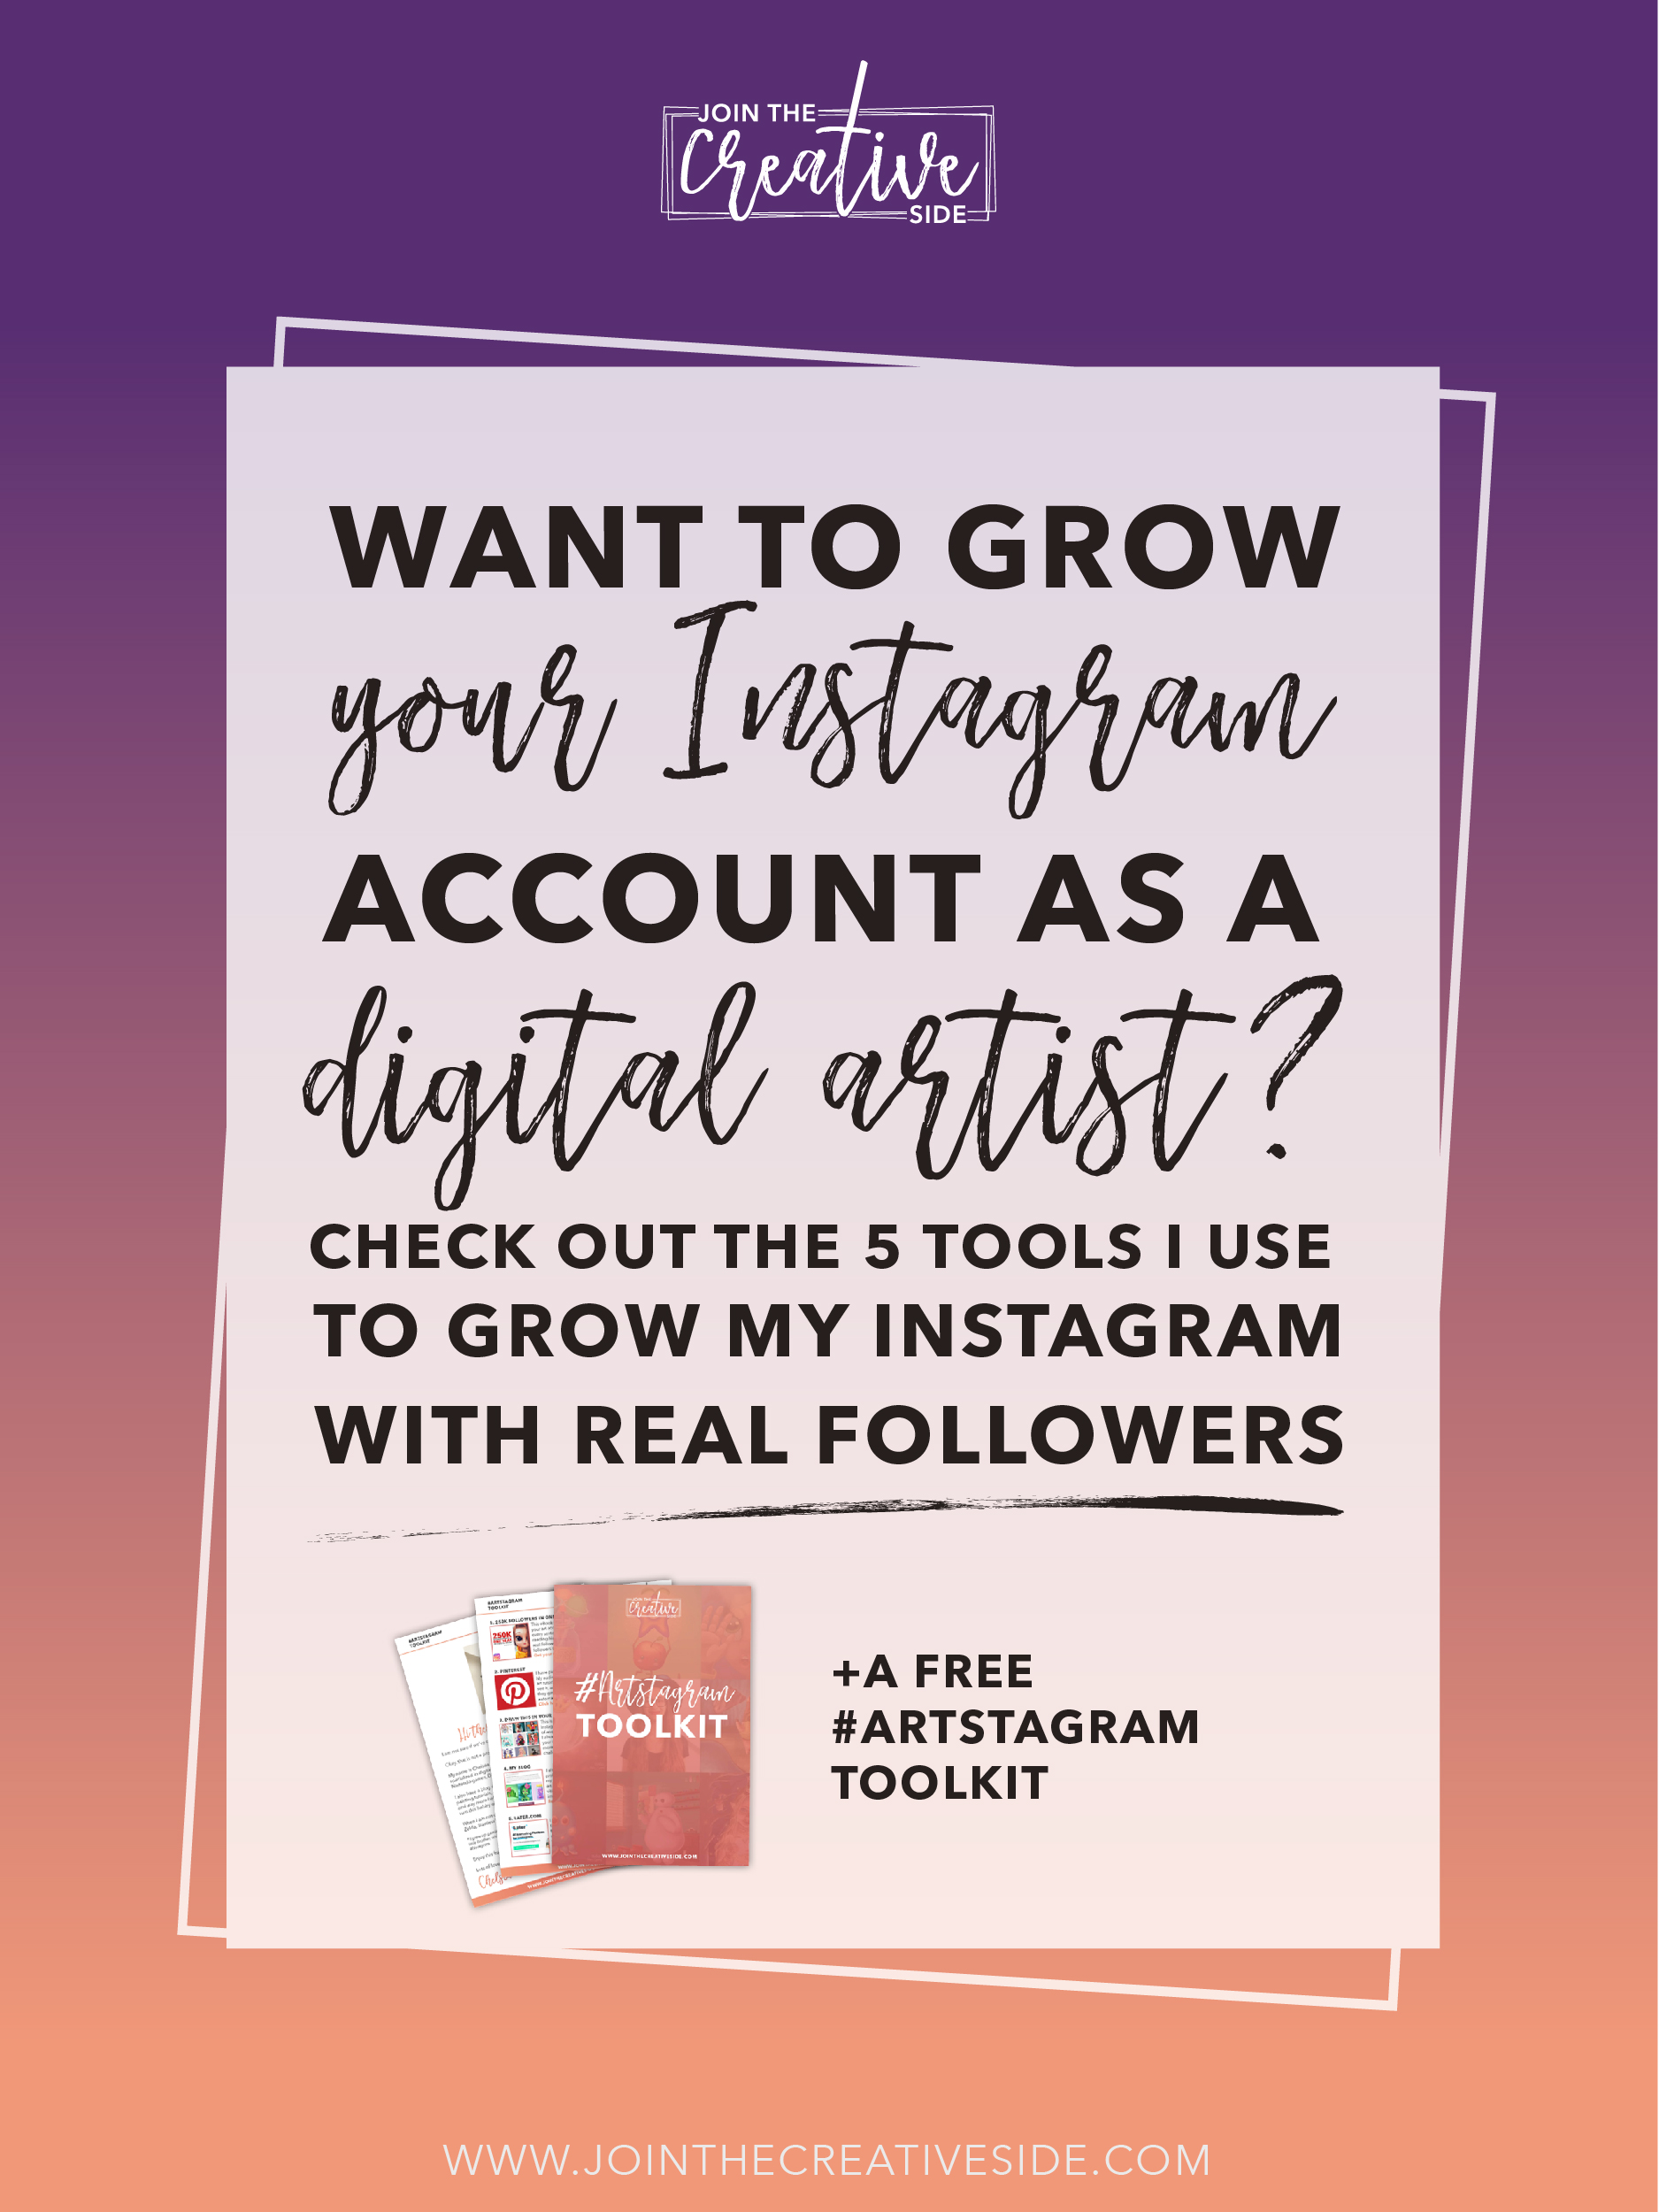 Are you struggling to grow your Instagram as a digital artist? Is the Instagram algorithm a total nightmare for you? I have been there. I used to struggle big time with getting followers on Instagram! That was until I implemented all the tools I am using now to grow my Instagram as a digital artist. Read the blog post to find out which tools you need to use to build a high-engaged audience on Instagram #instagram #Instagrammarketing #socialmediamarketing #artinstagram #instagramforartists